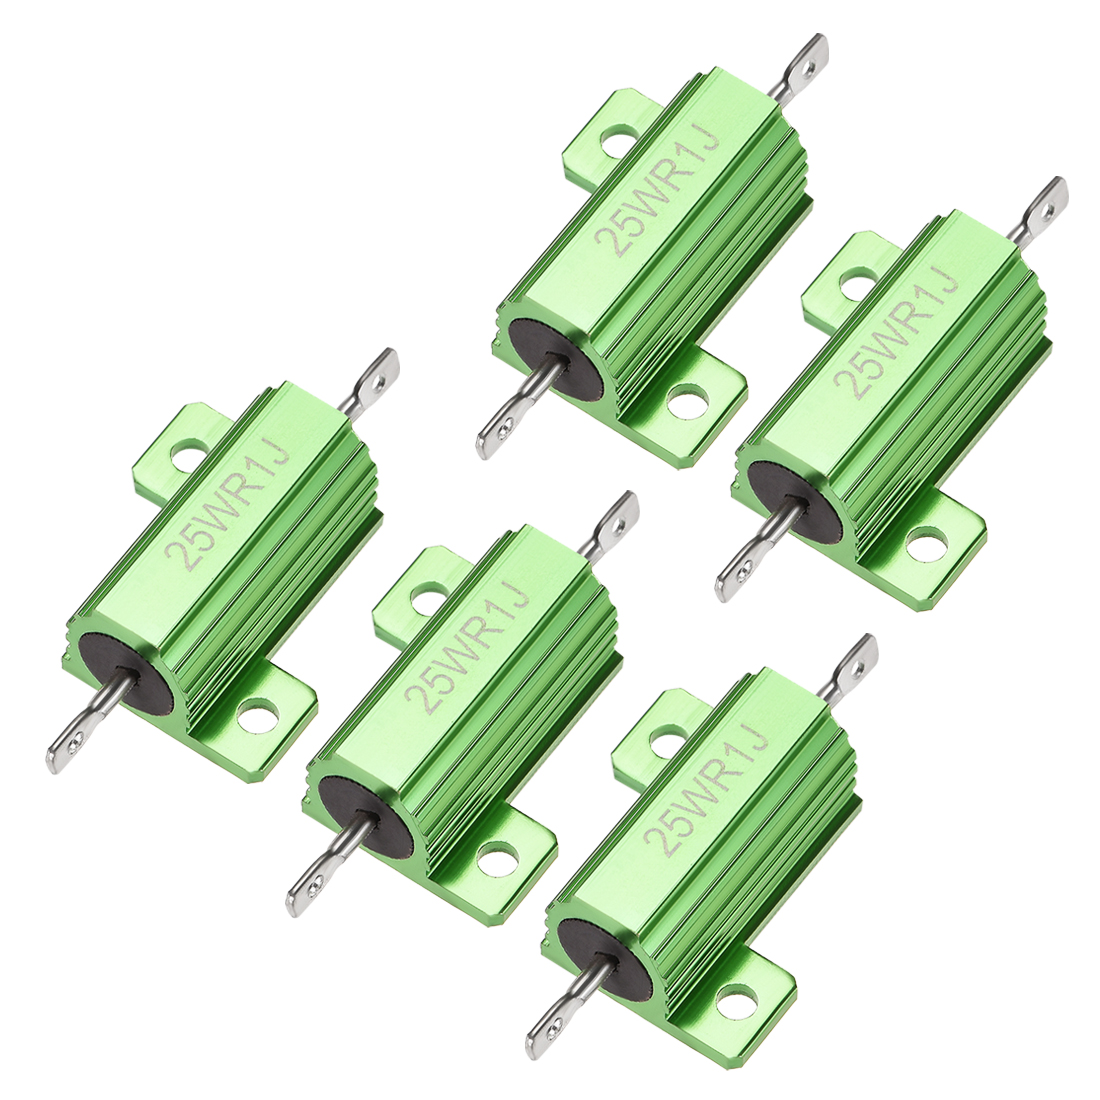 25W 0.1 Ohm 5% Aluminum Housing Resistor Wirewound Resistor Green Tone 5 Pcs